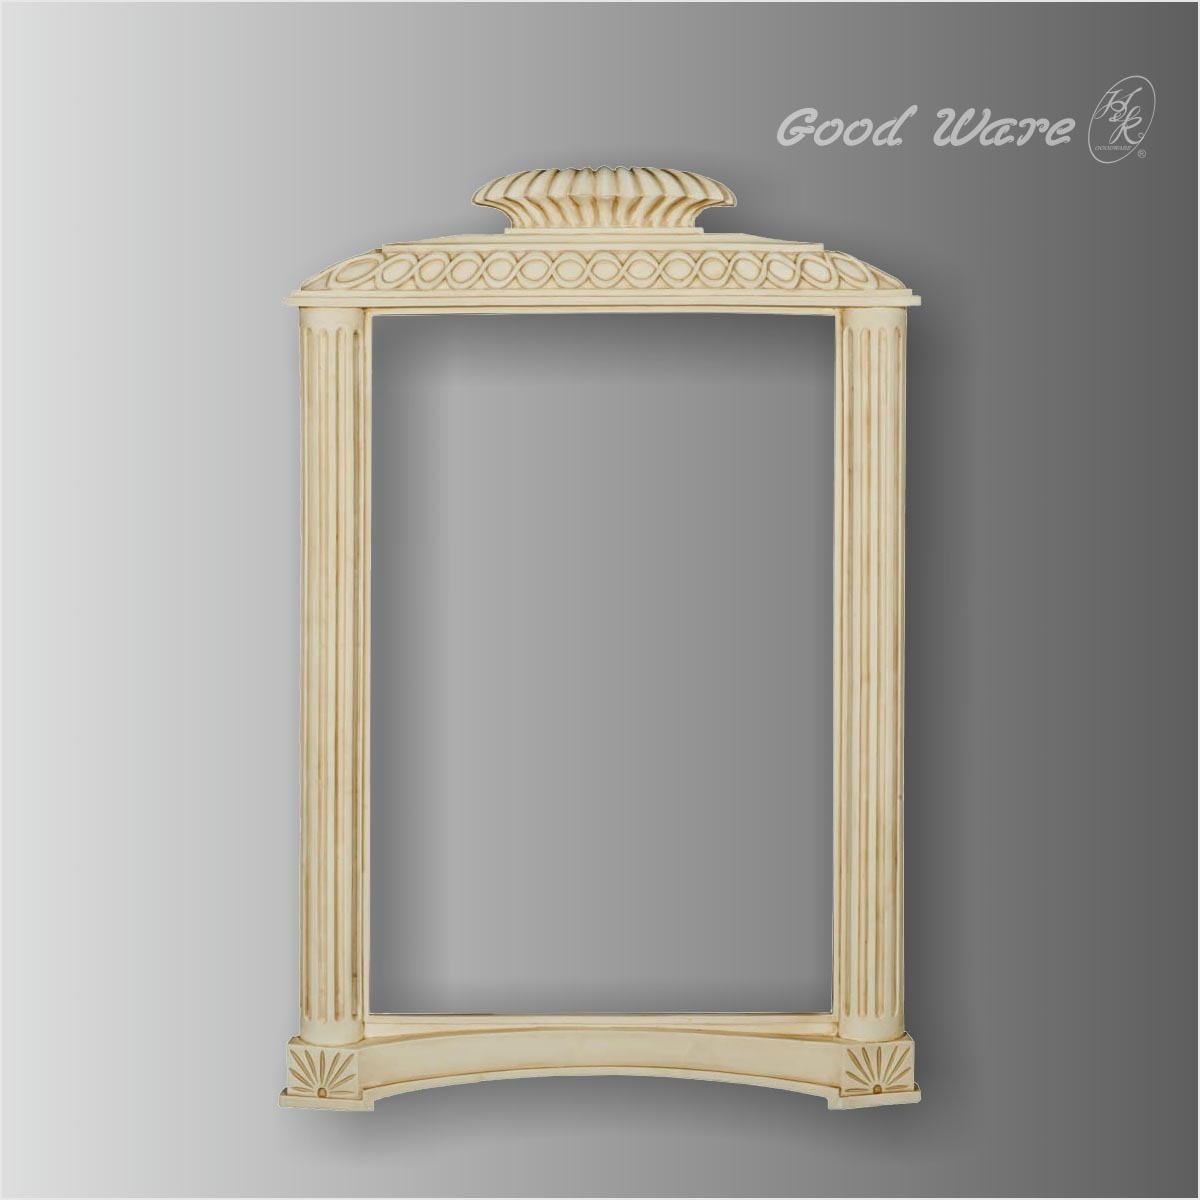 Polyurethane decorative square elegant mirror frames